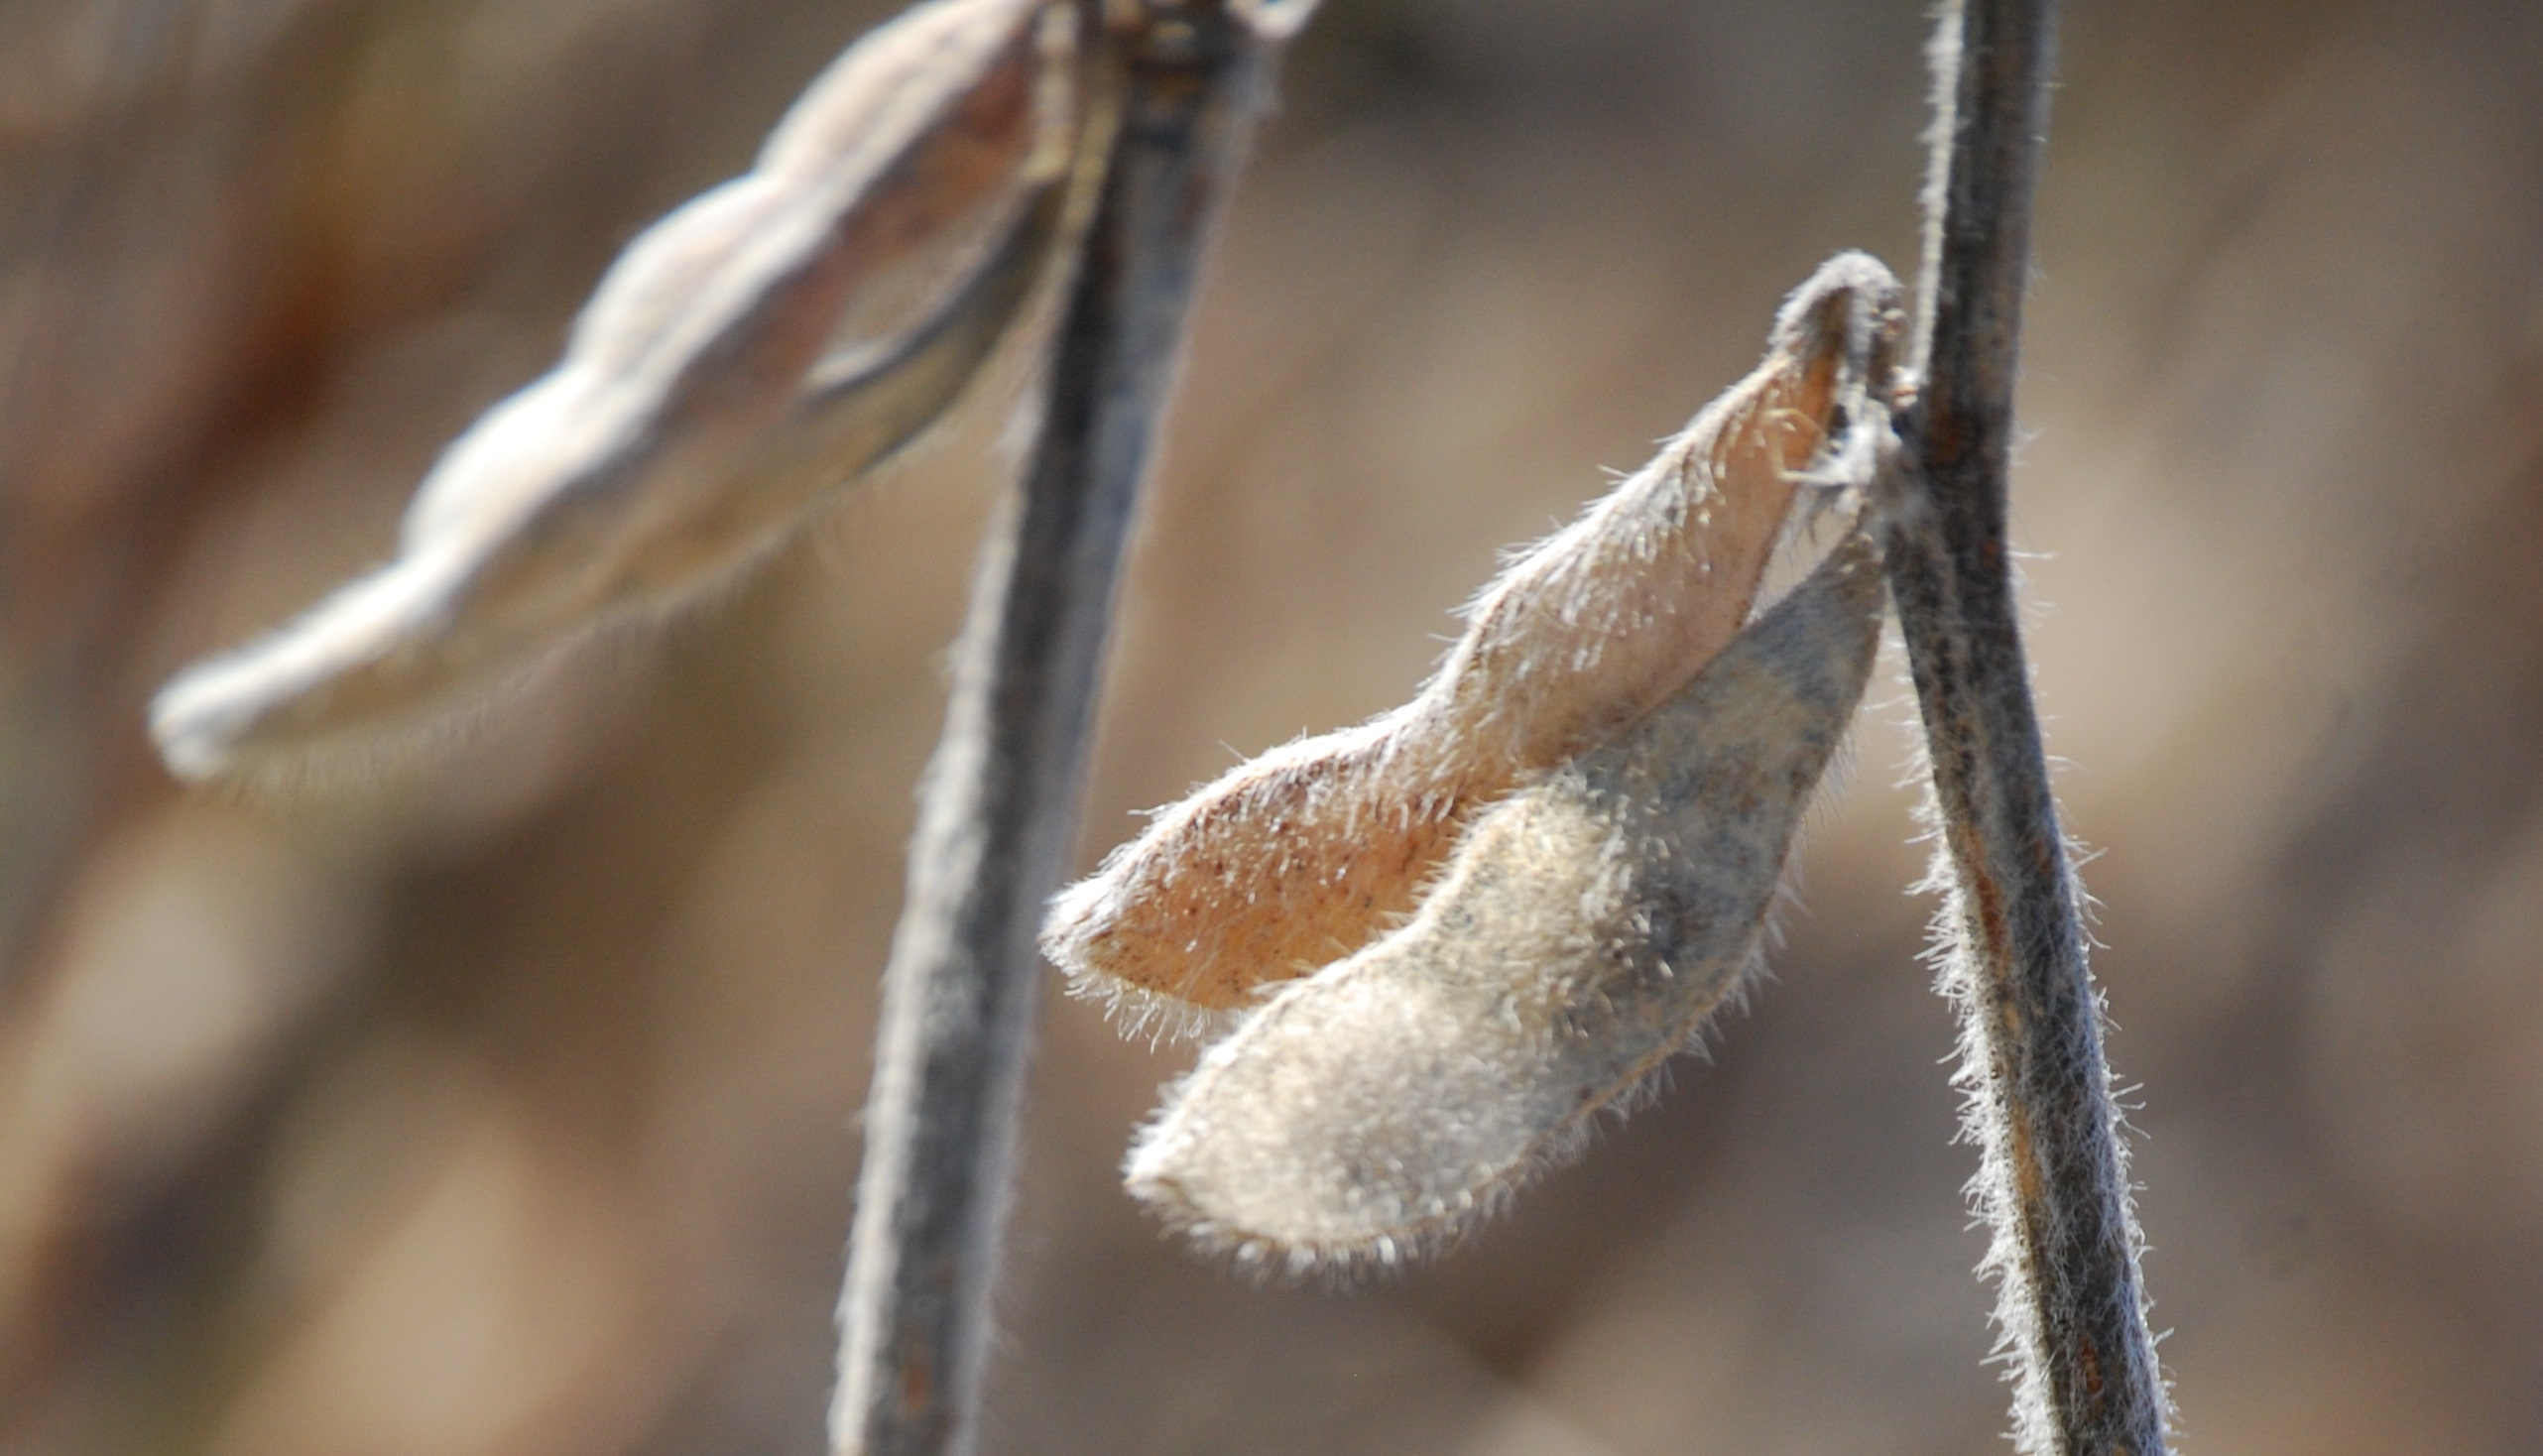 This agronomic image shows soybeans.